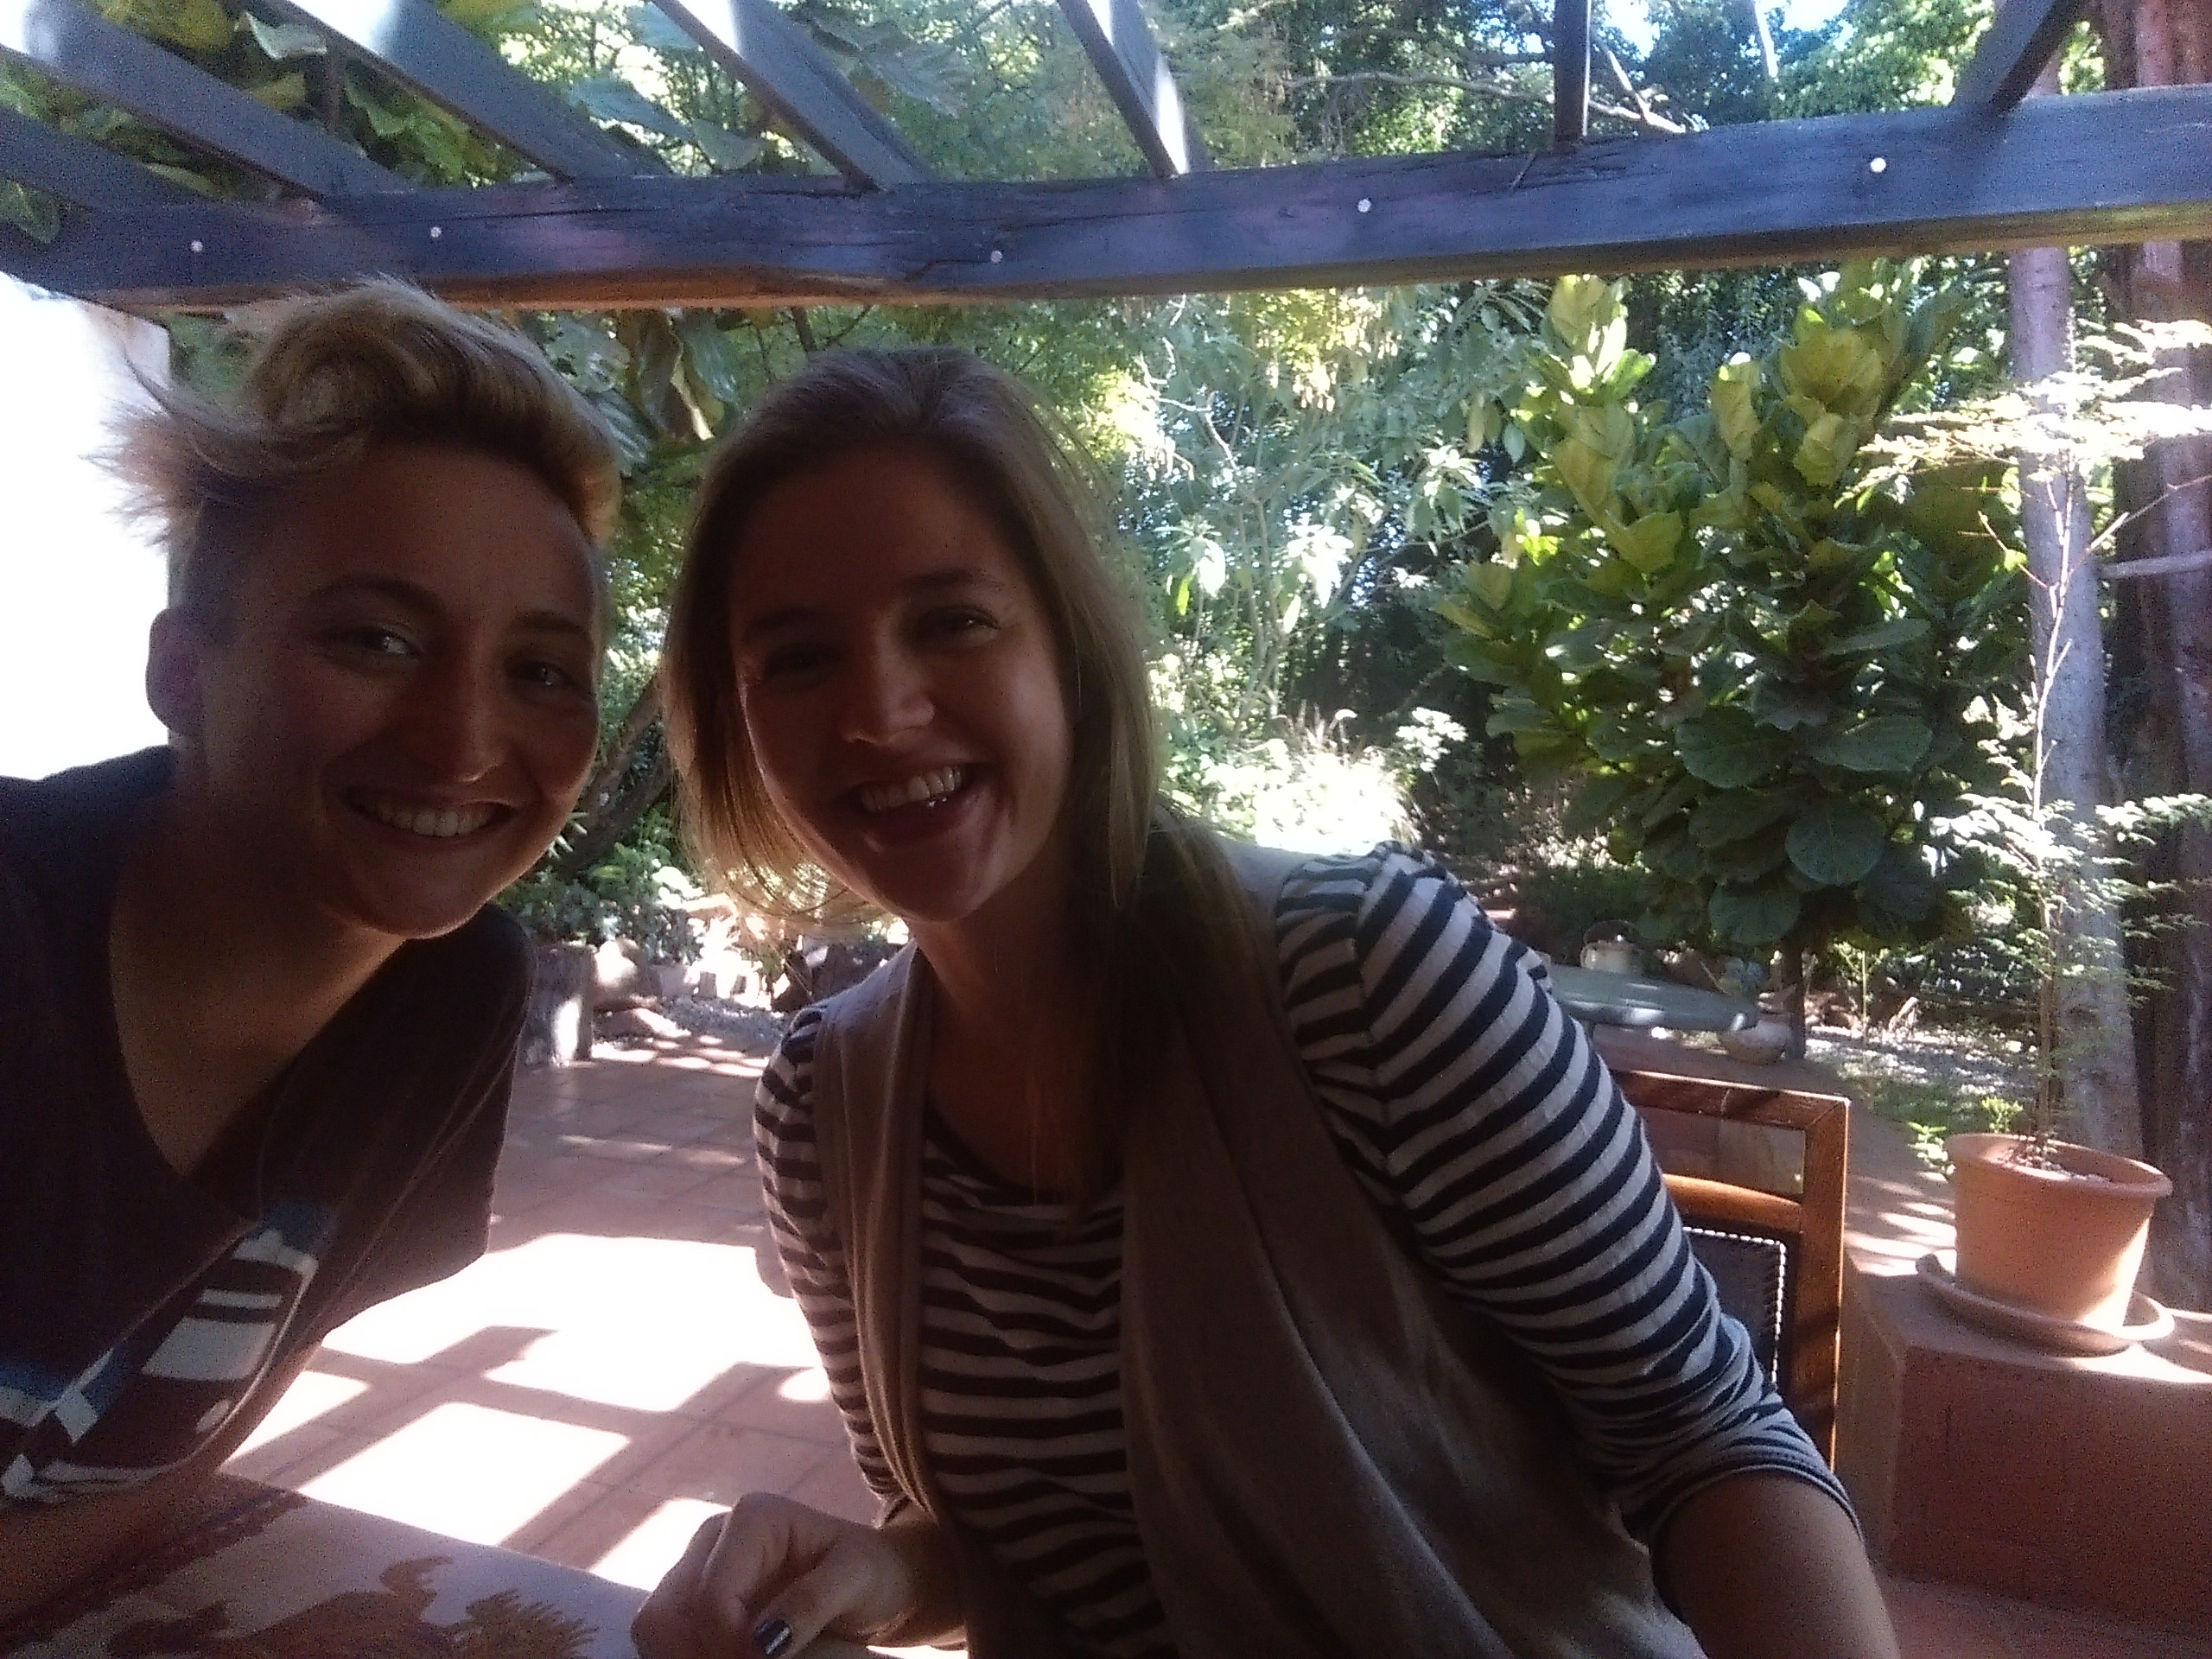 Two blondish ladies in black and white tshirts smiling at a table with a background of trees